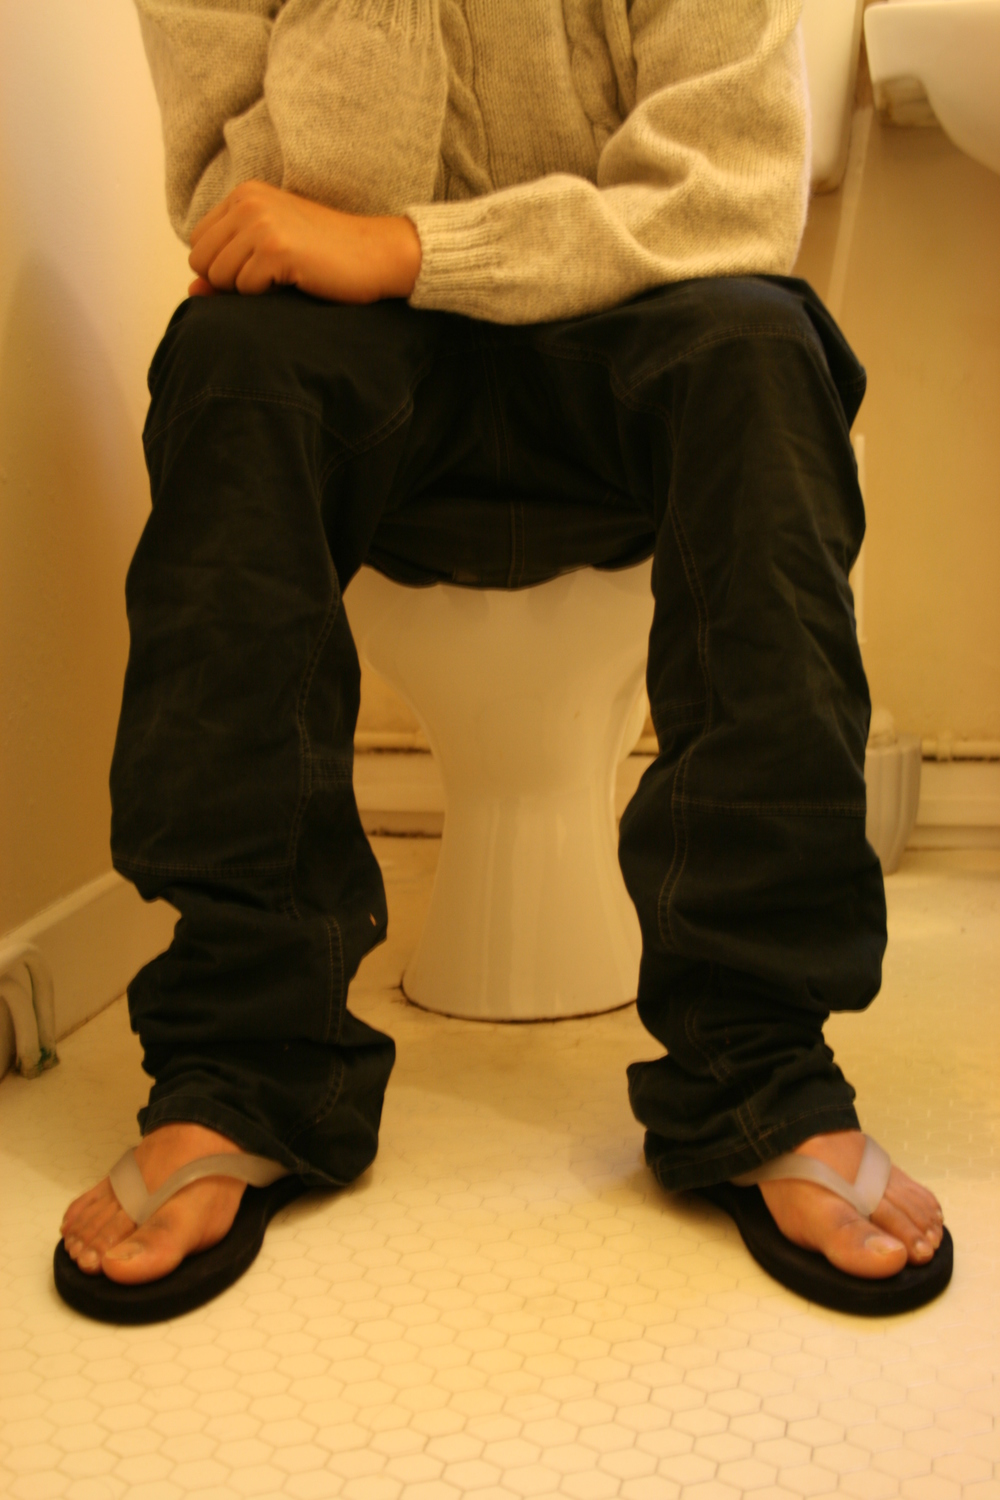 man-sitting-on-toilet.jpg